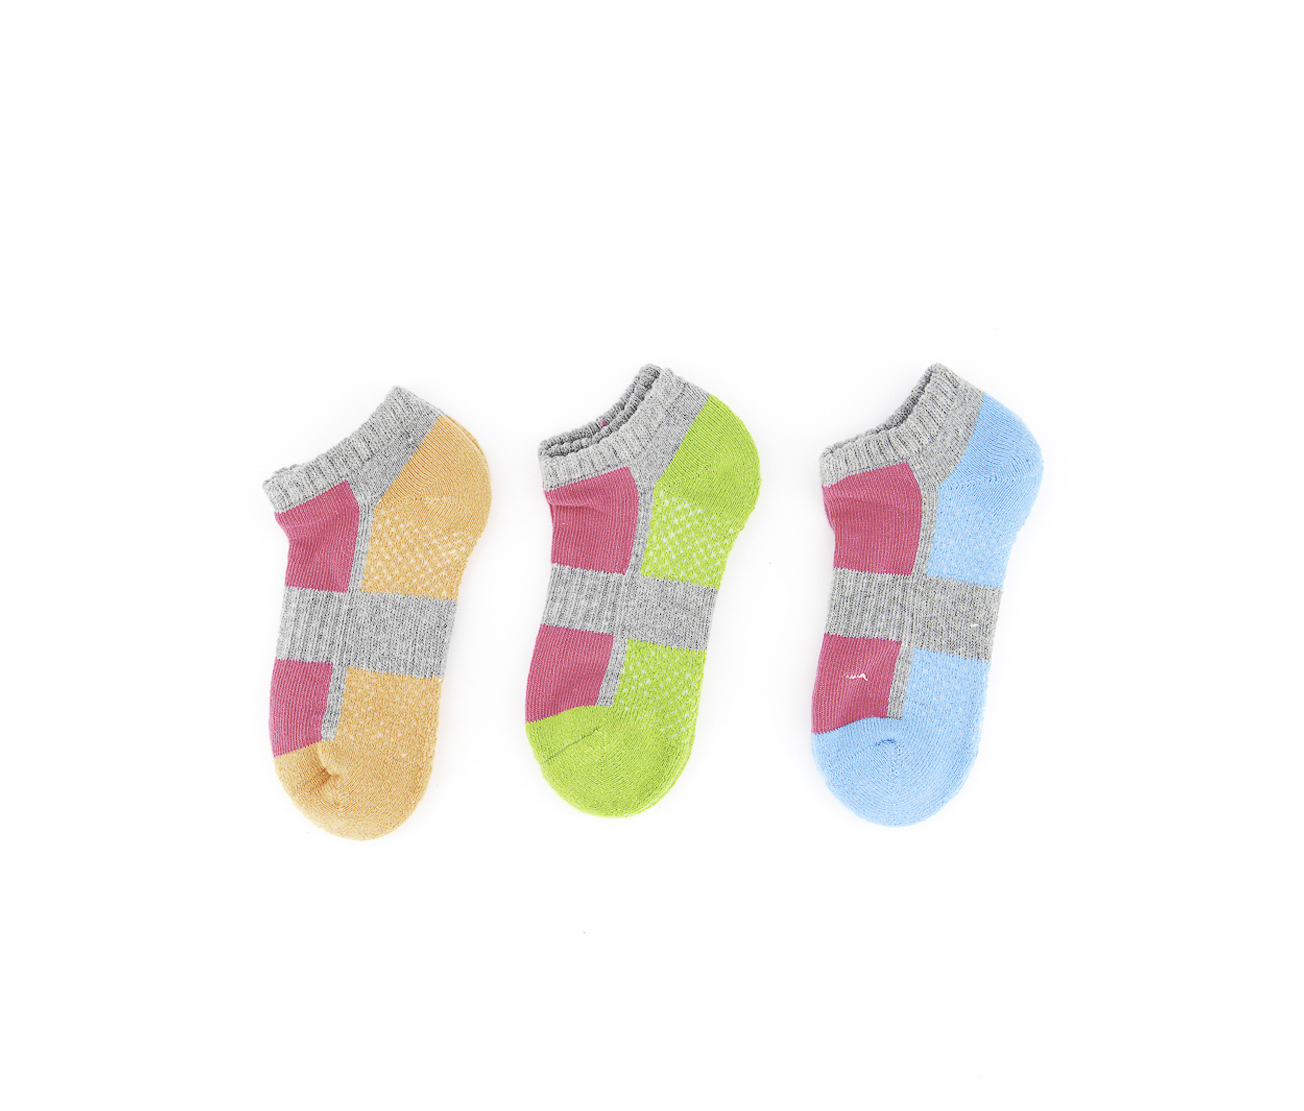 Girls 3 Pair Colorblock Socks, Grey/Pink/Orange/Green/Blue